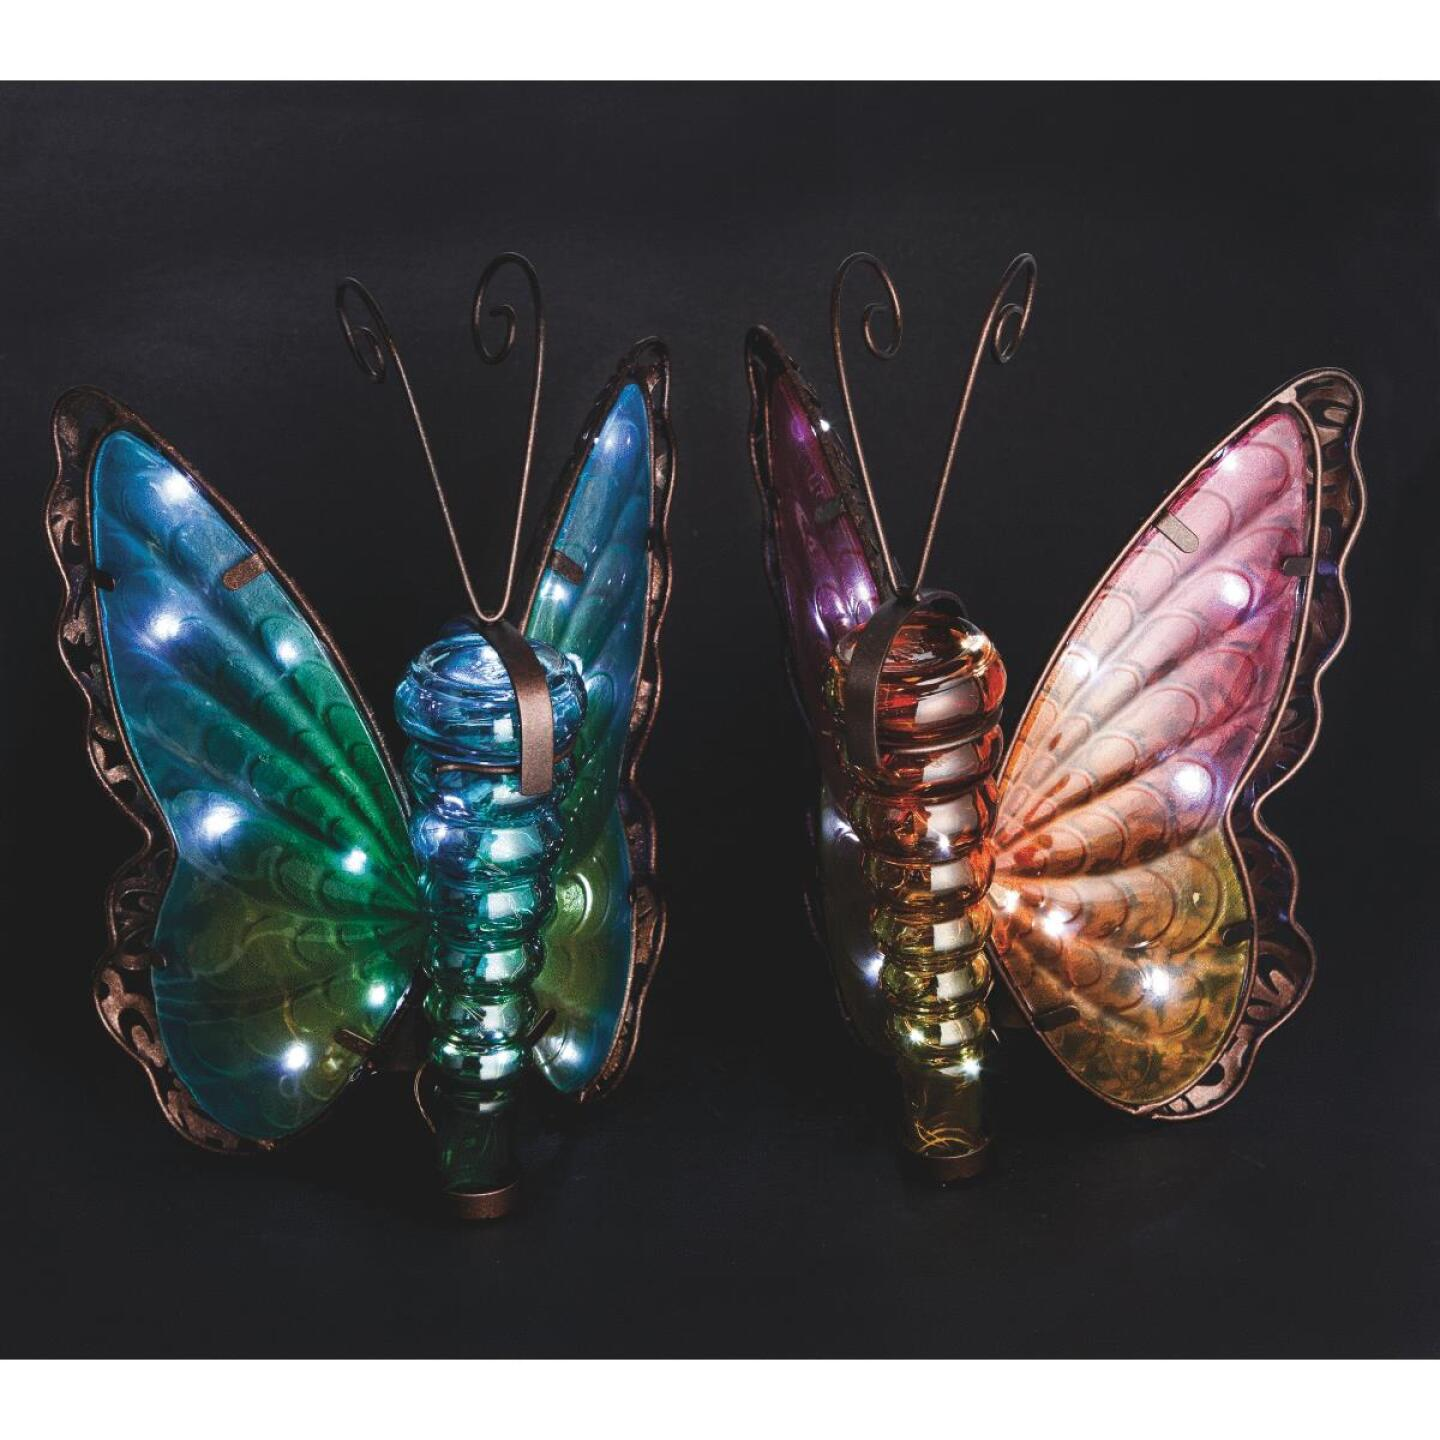 Outdoor Expressions 8 In. W. x 11.25 In. H. x 7 In. D. Butterfly Solar Light Image 1